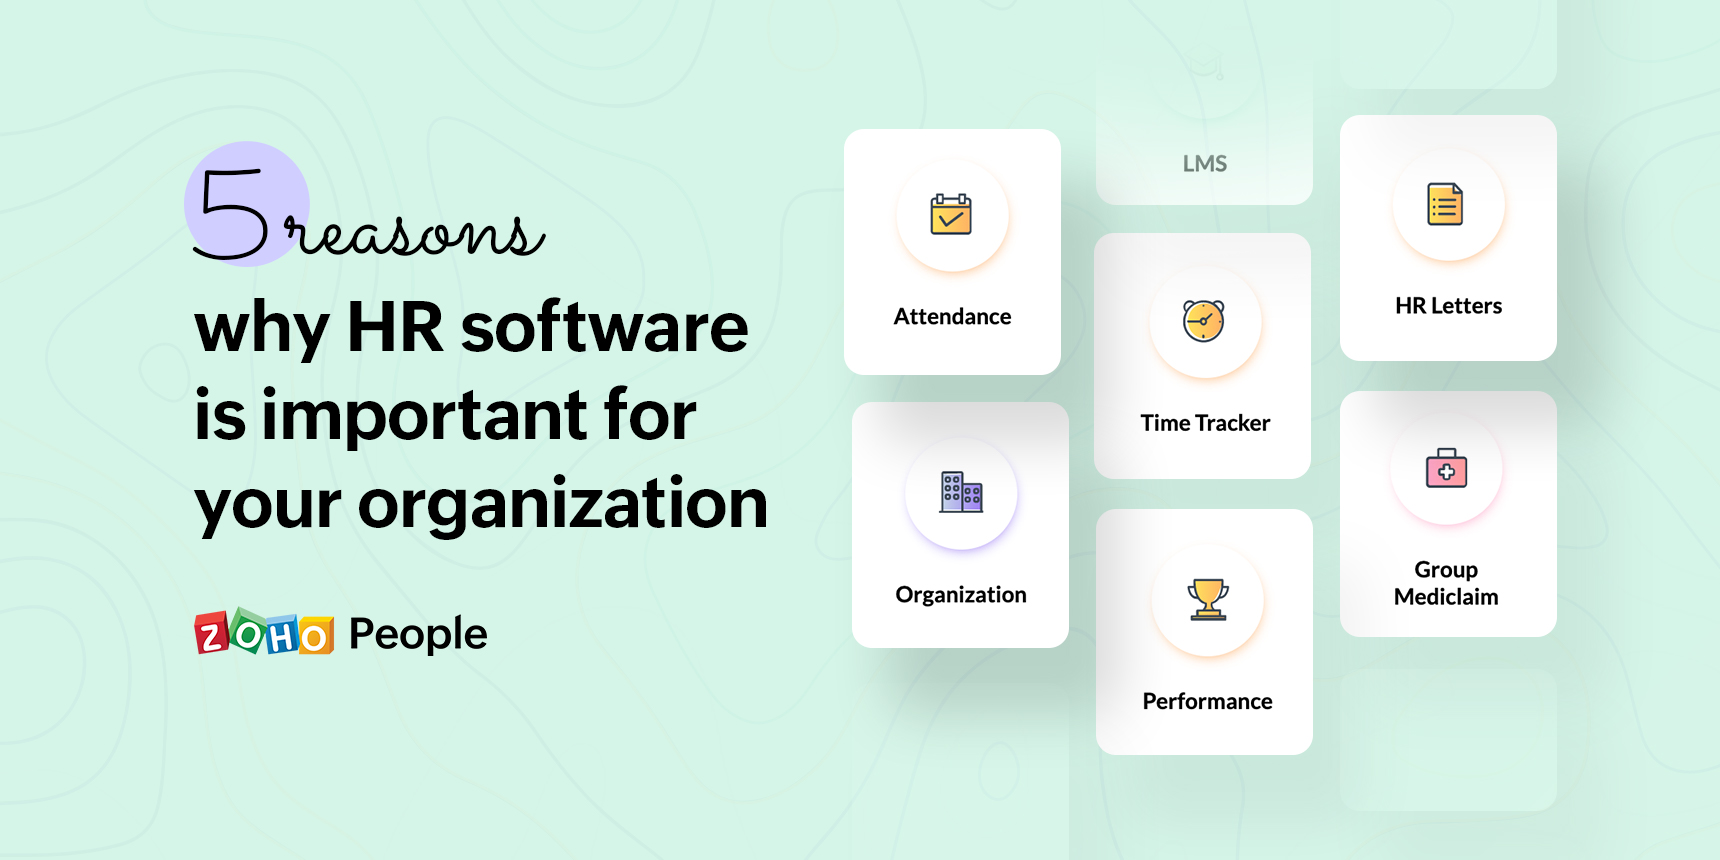 Here's why HR software is important for your organization